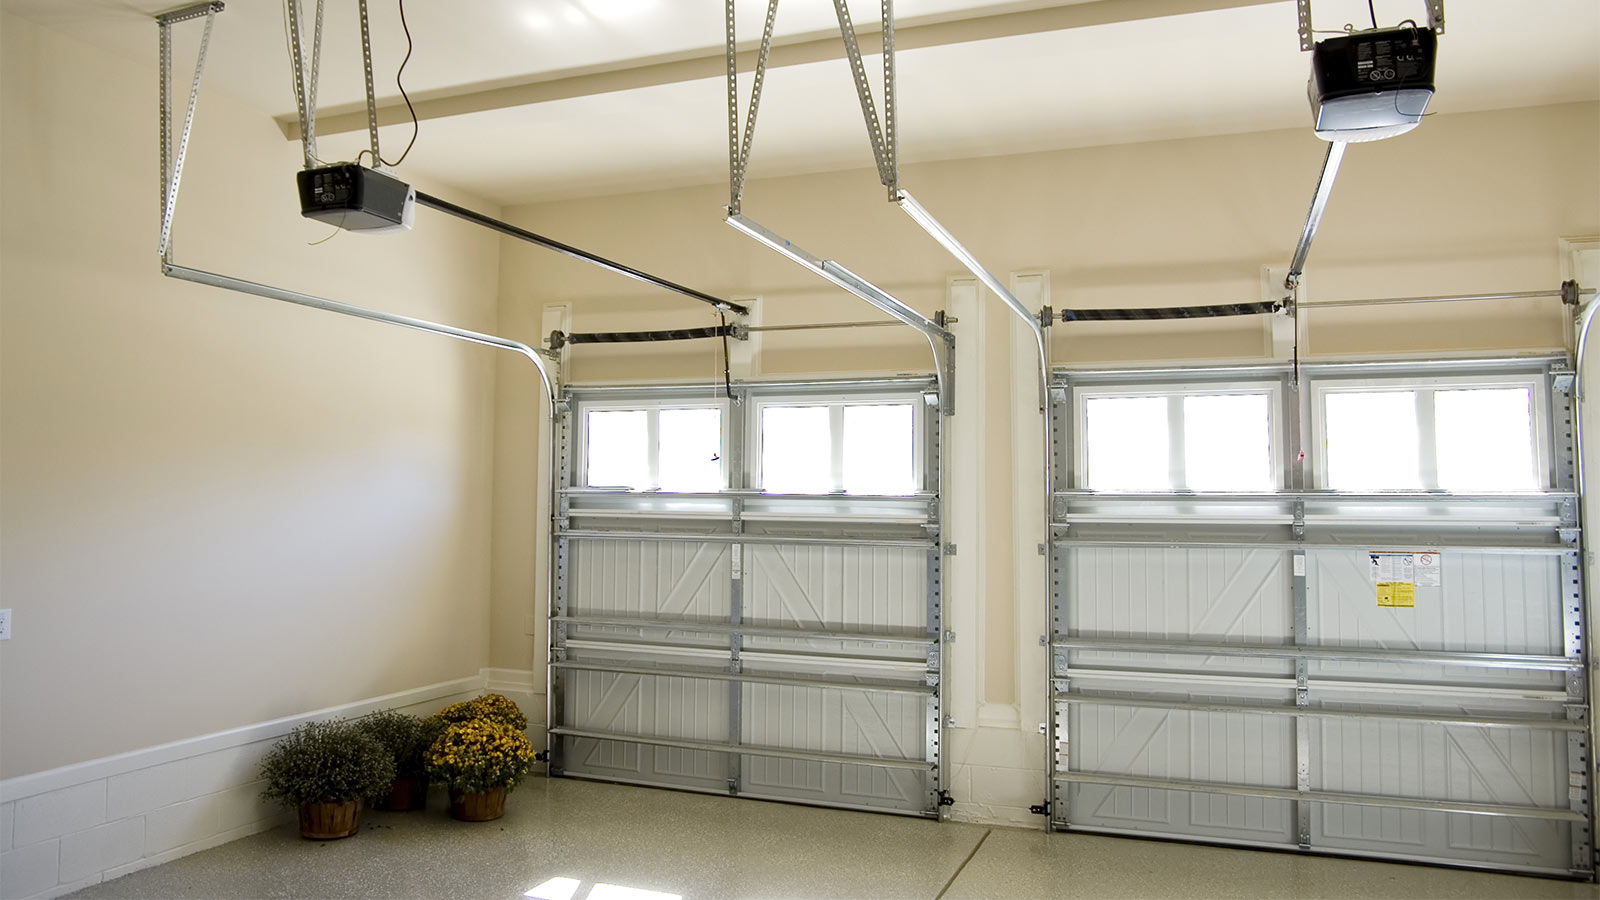 Sectional Garage Doors from Shop Front Shutters Braintree suppliers.